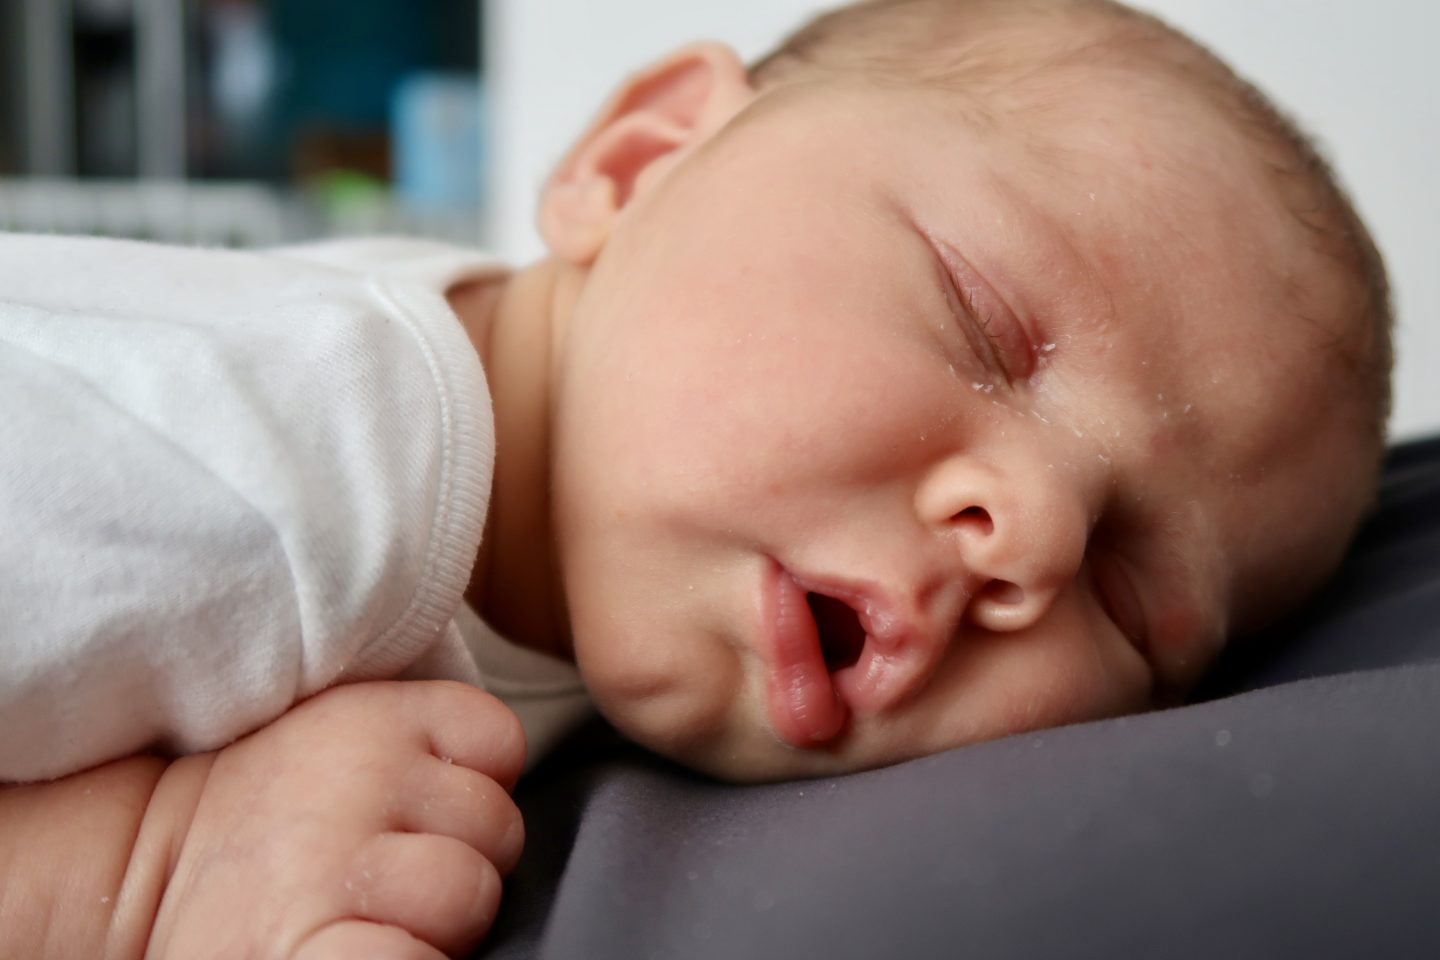 JJ at one month old | Sleeping on daddy https://oddhogg.com